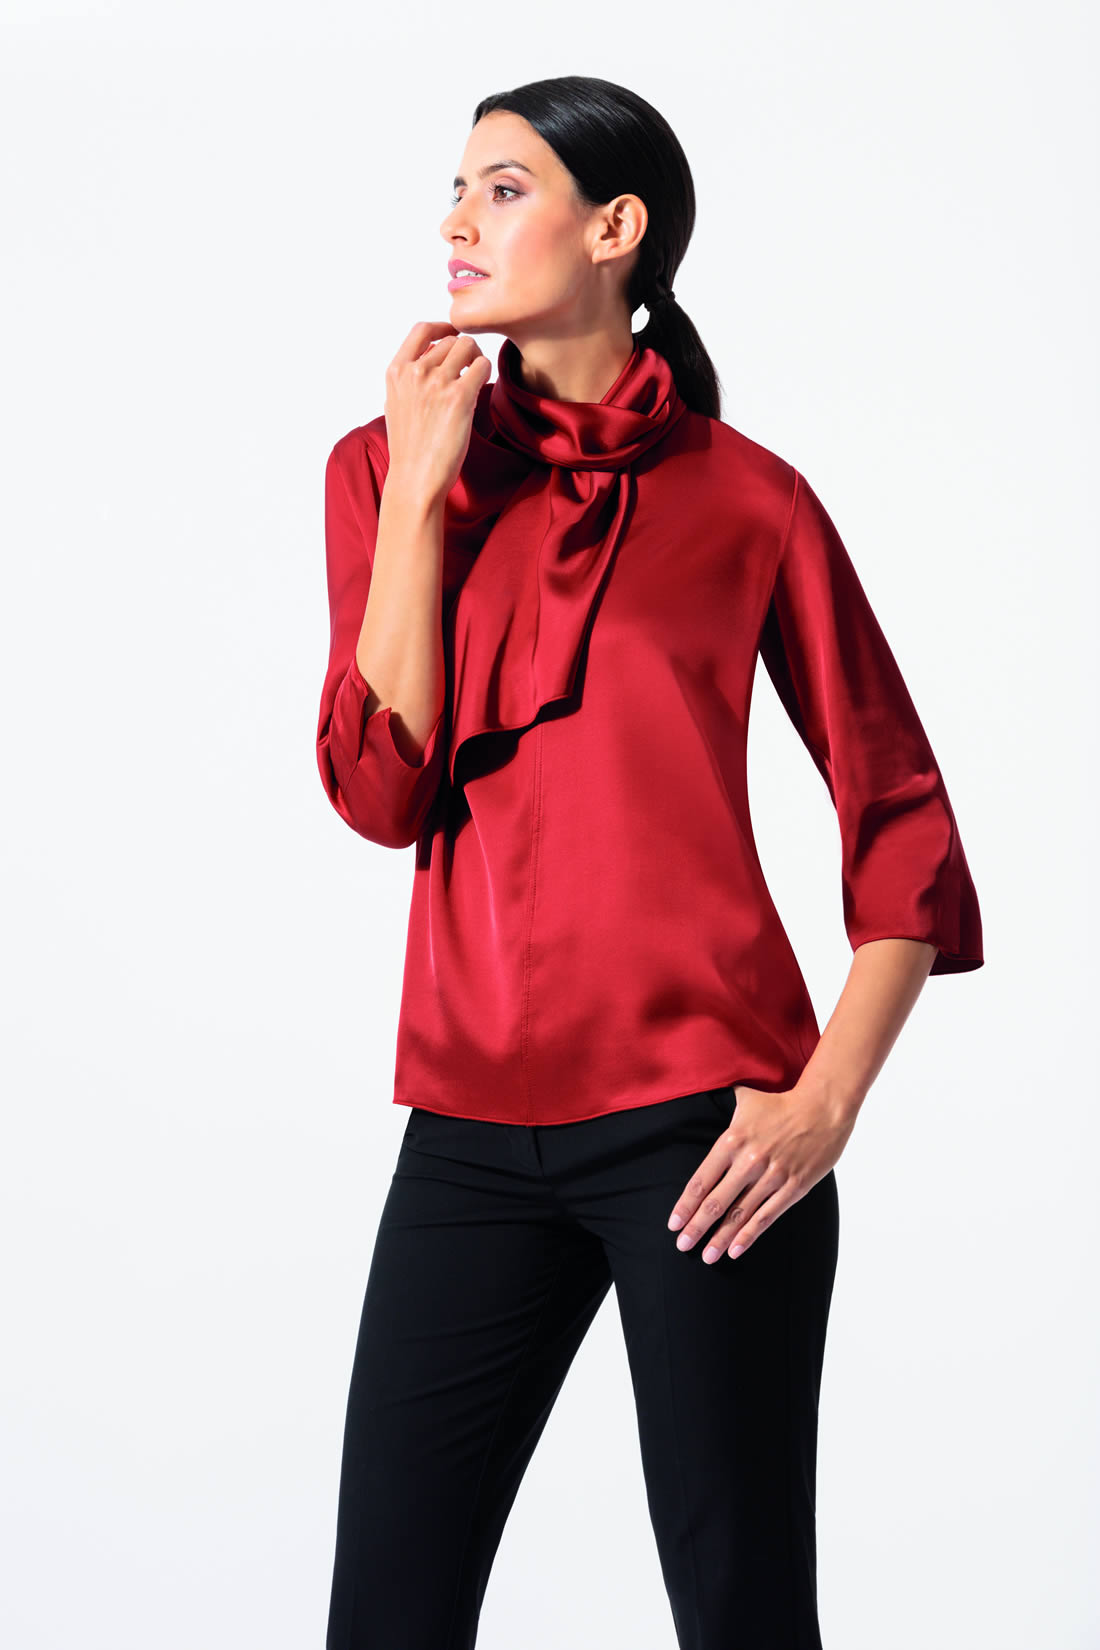 SOMMERMANN likeme - blouse collectie herfst / winter - 2020 / 2021 - 3